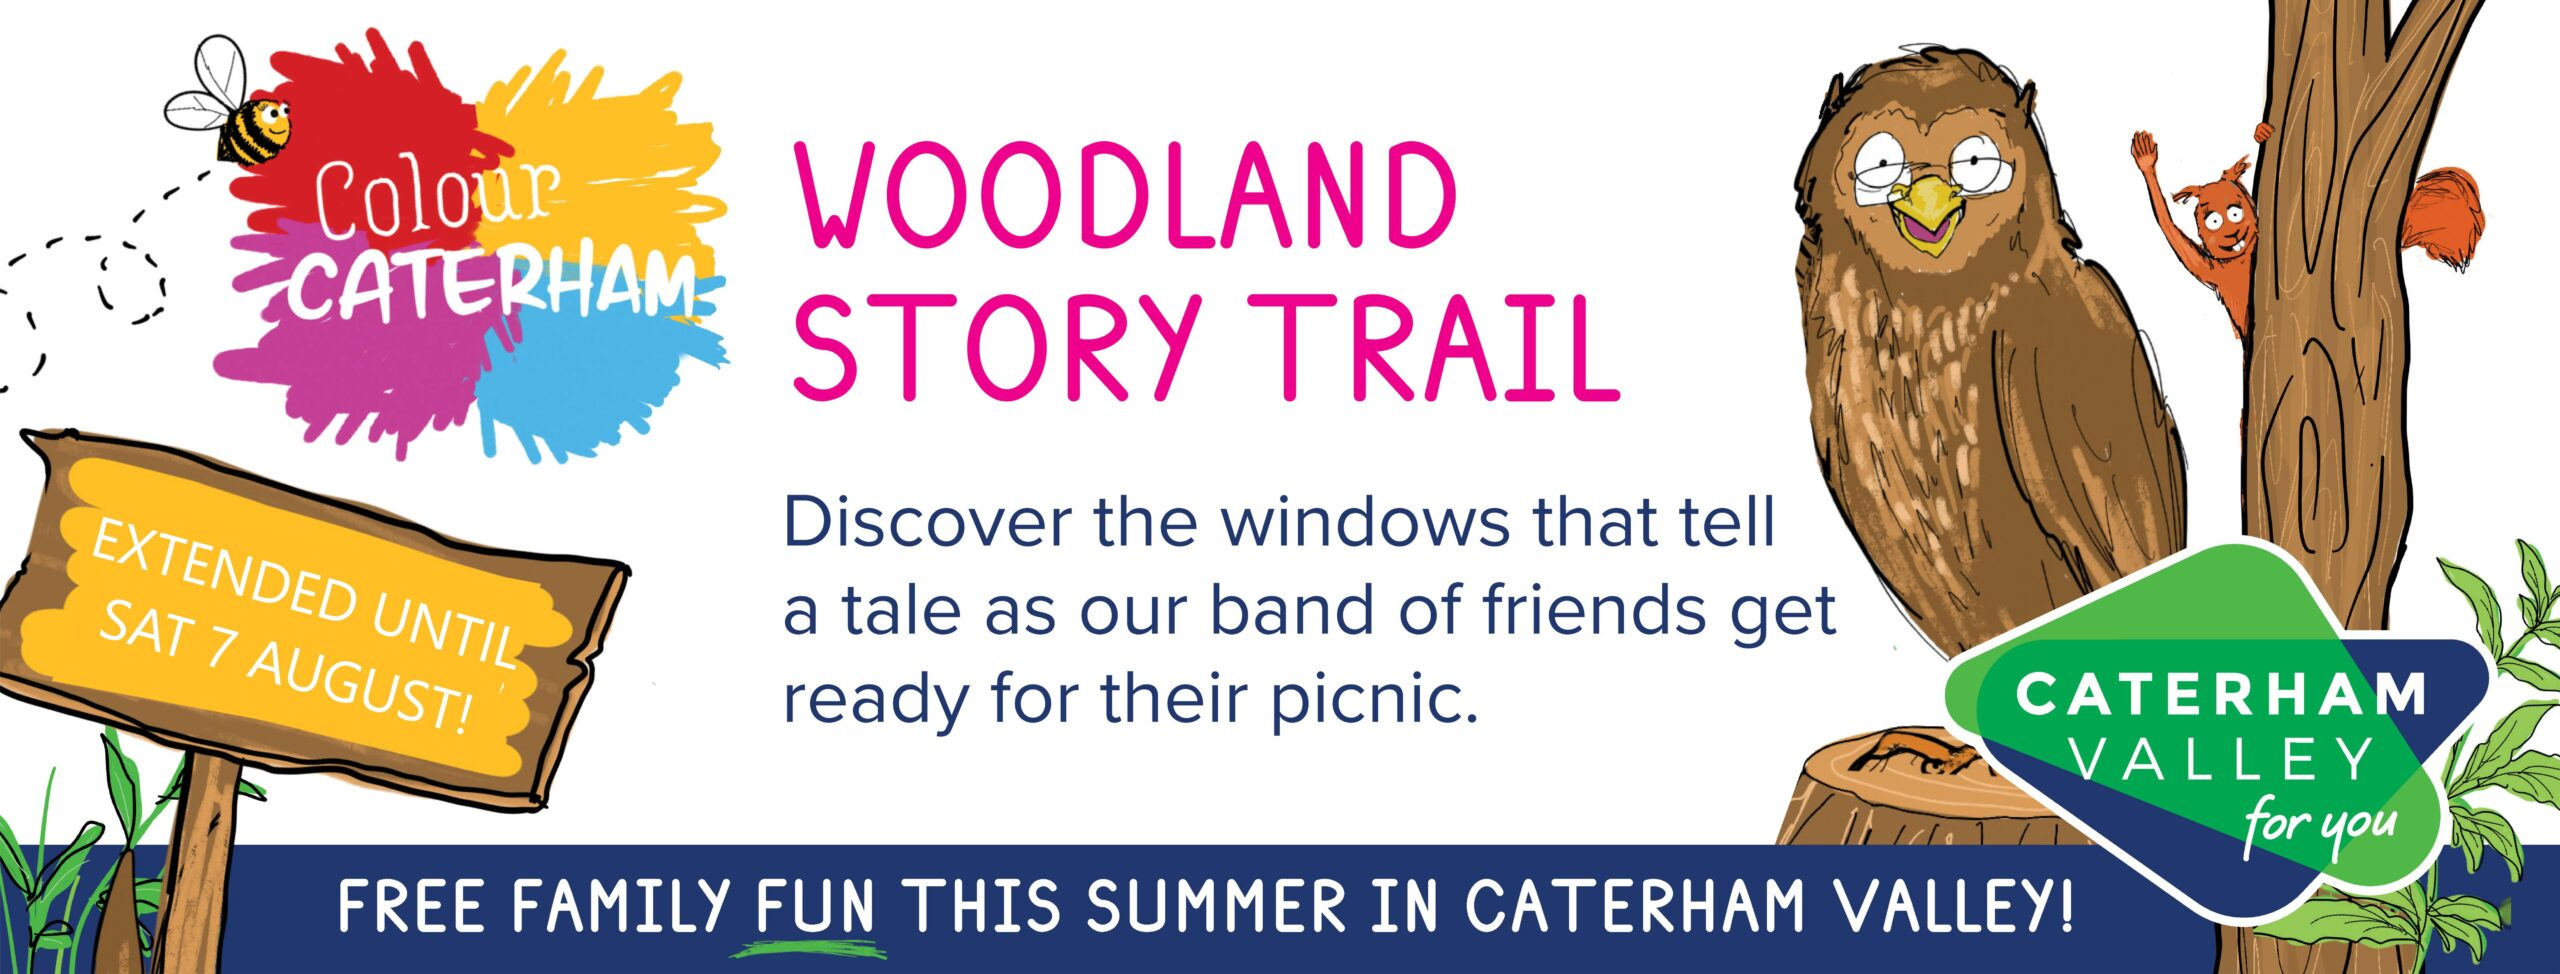 Caterham Valley's Woodland Story Trail